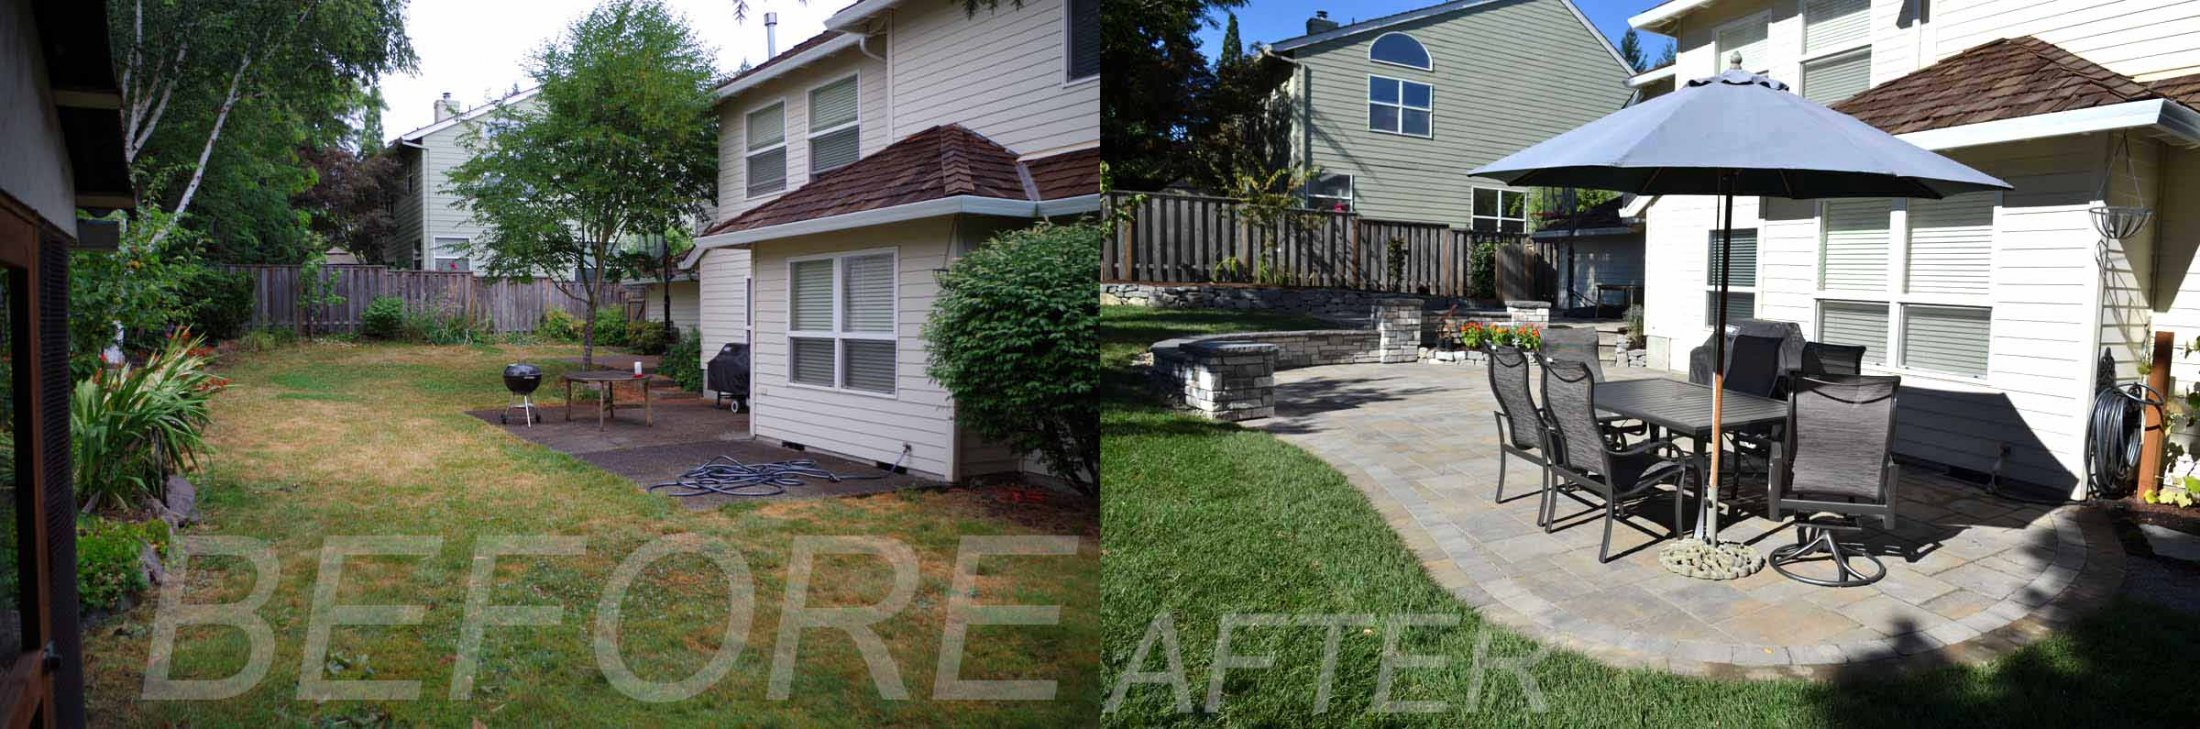 Before-After Pic of Back Yard Remodel